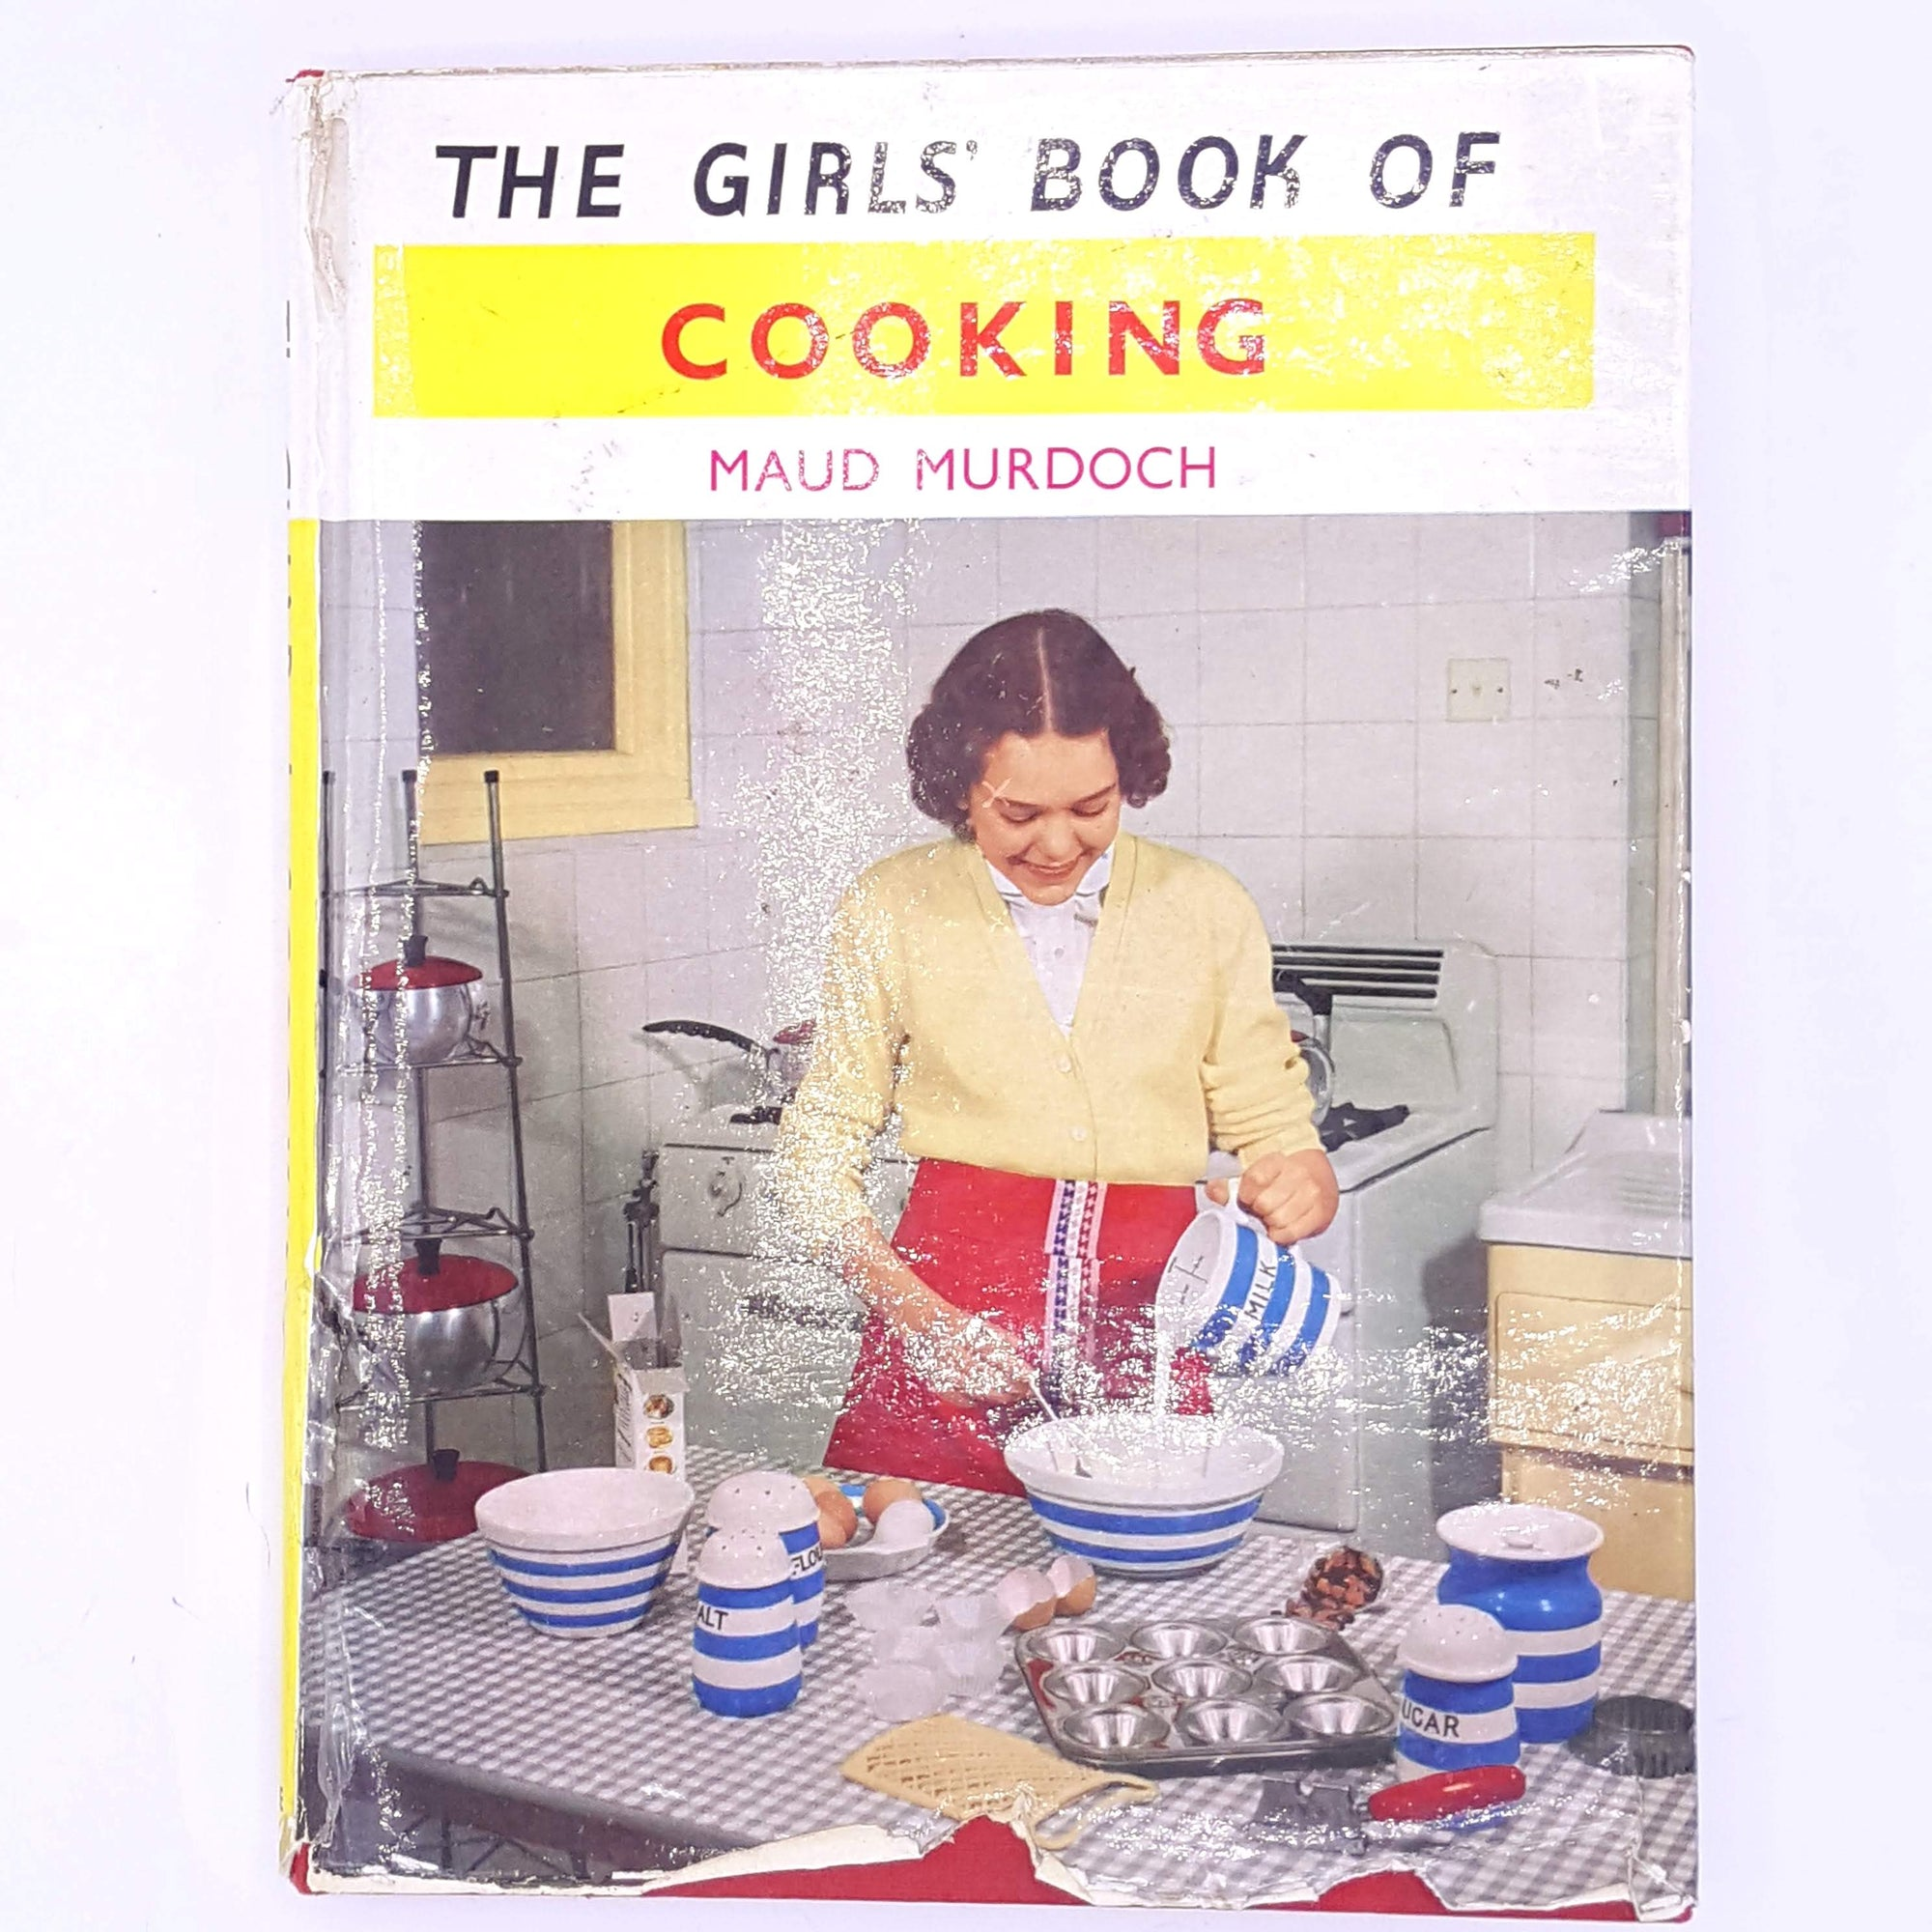 The Girls Book Of Cooking, Maud Murdoch